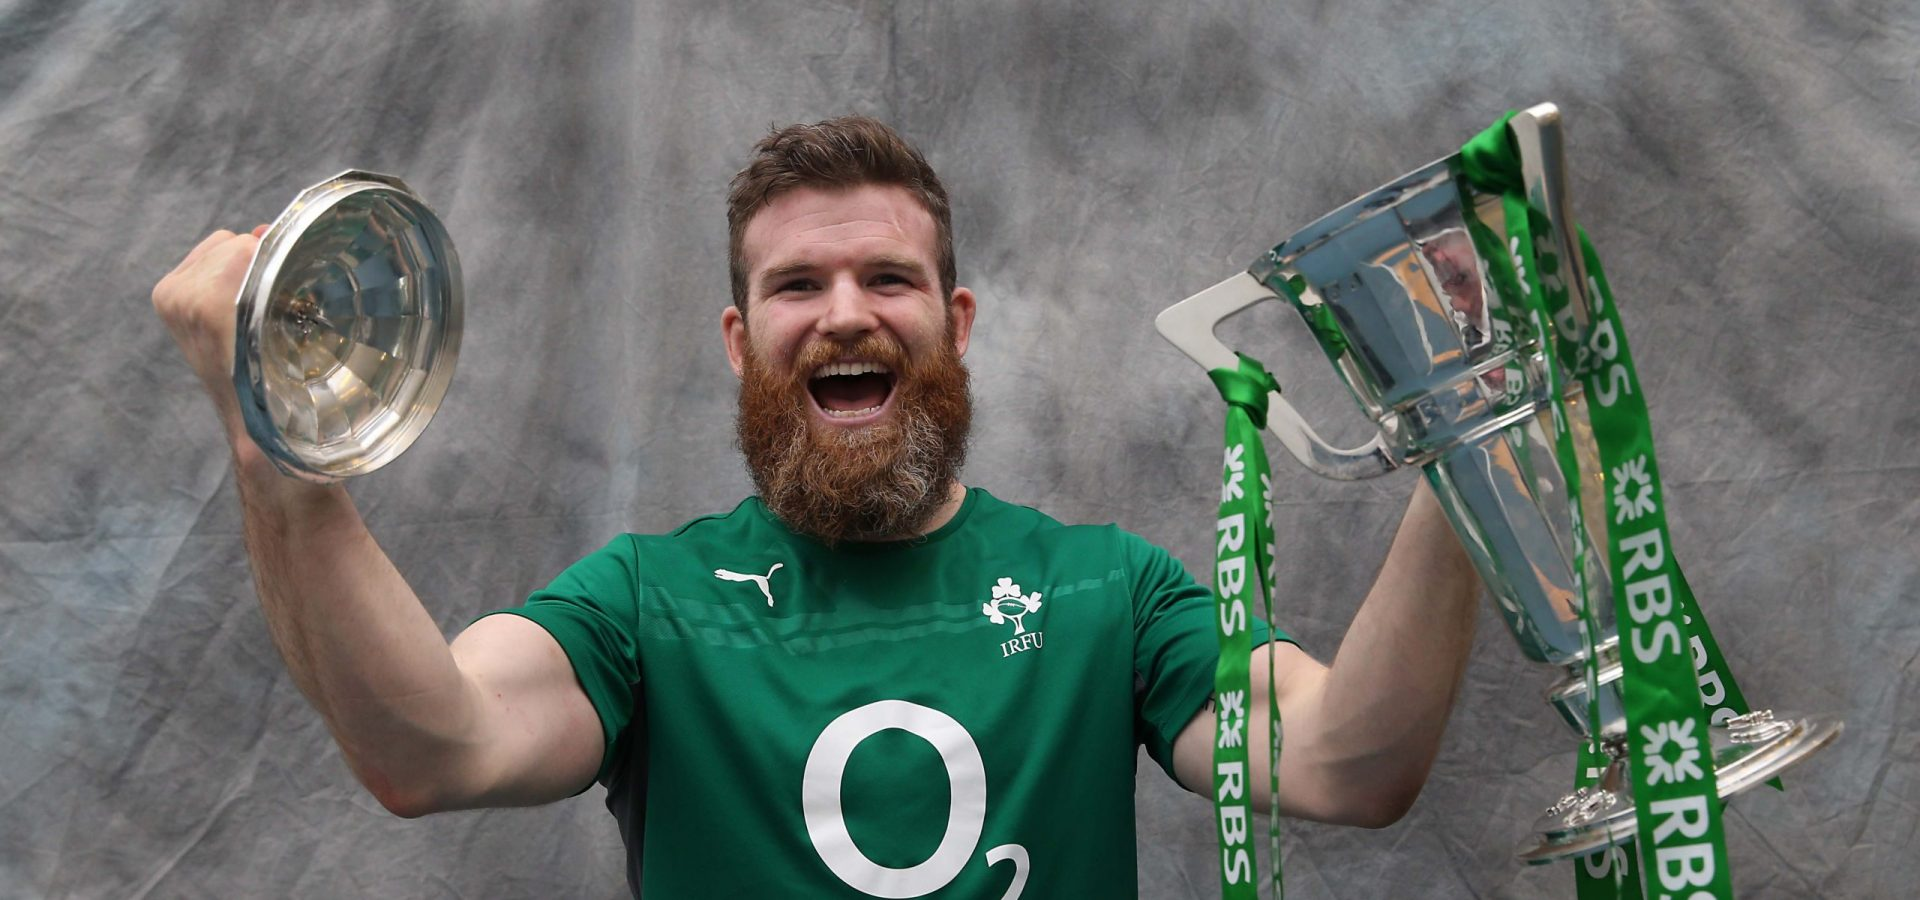 D'Arcy to be inducted into Hall of Fame